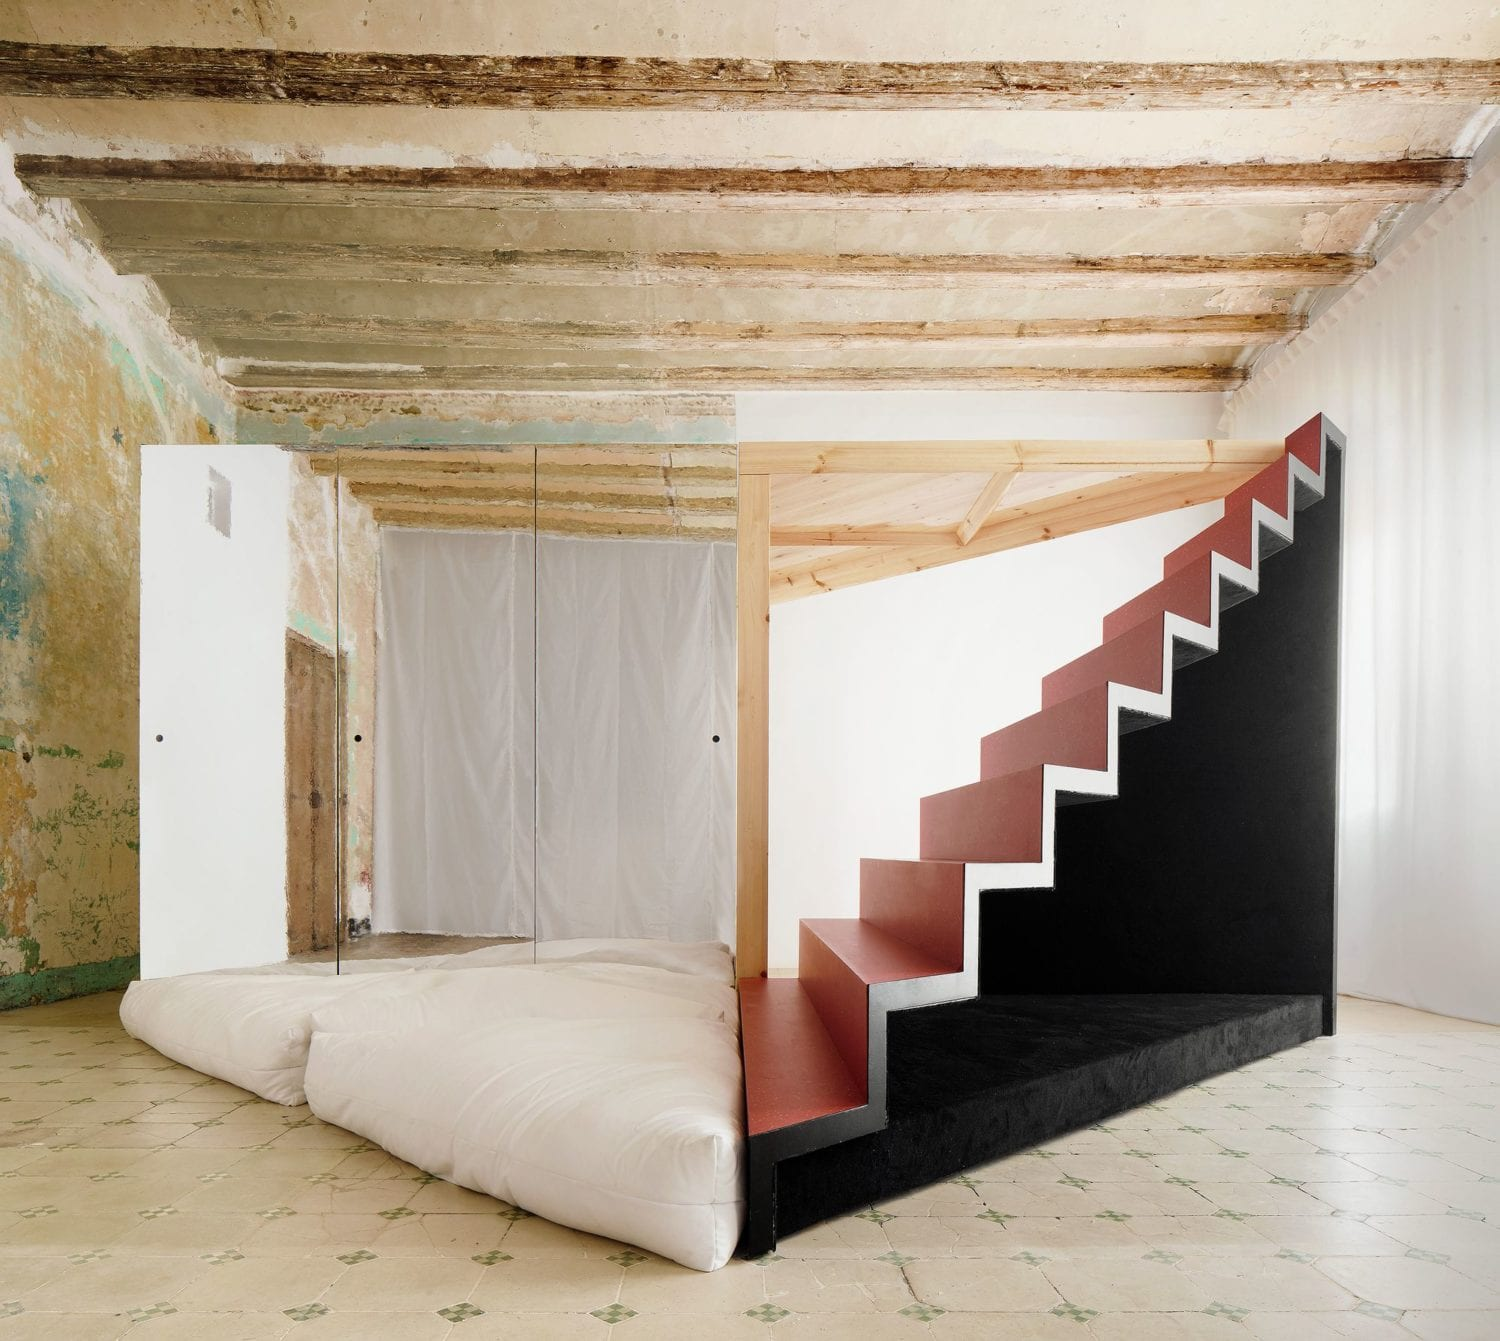 Transforming Room For Child Inside Barcelona Apartment By P M A A Yellowtrace 07